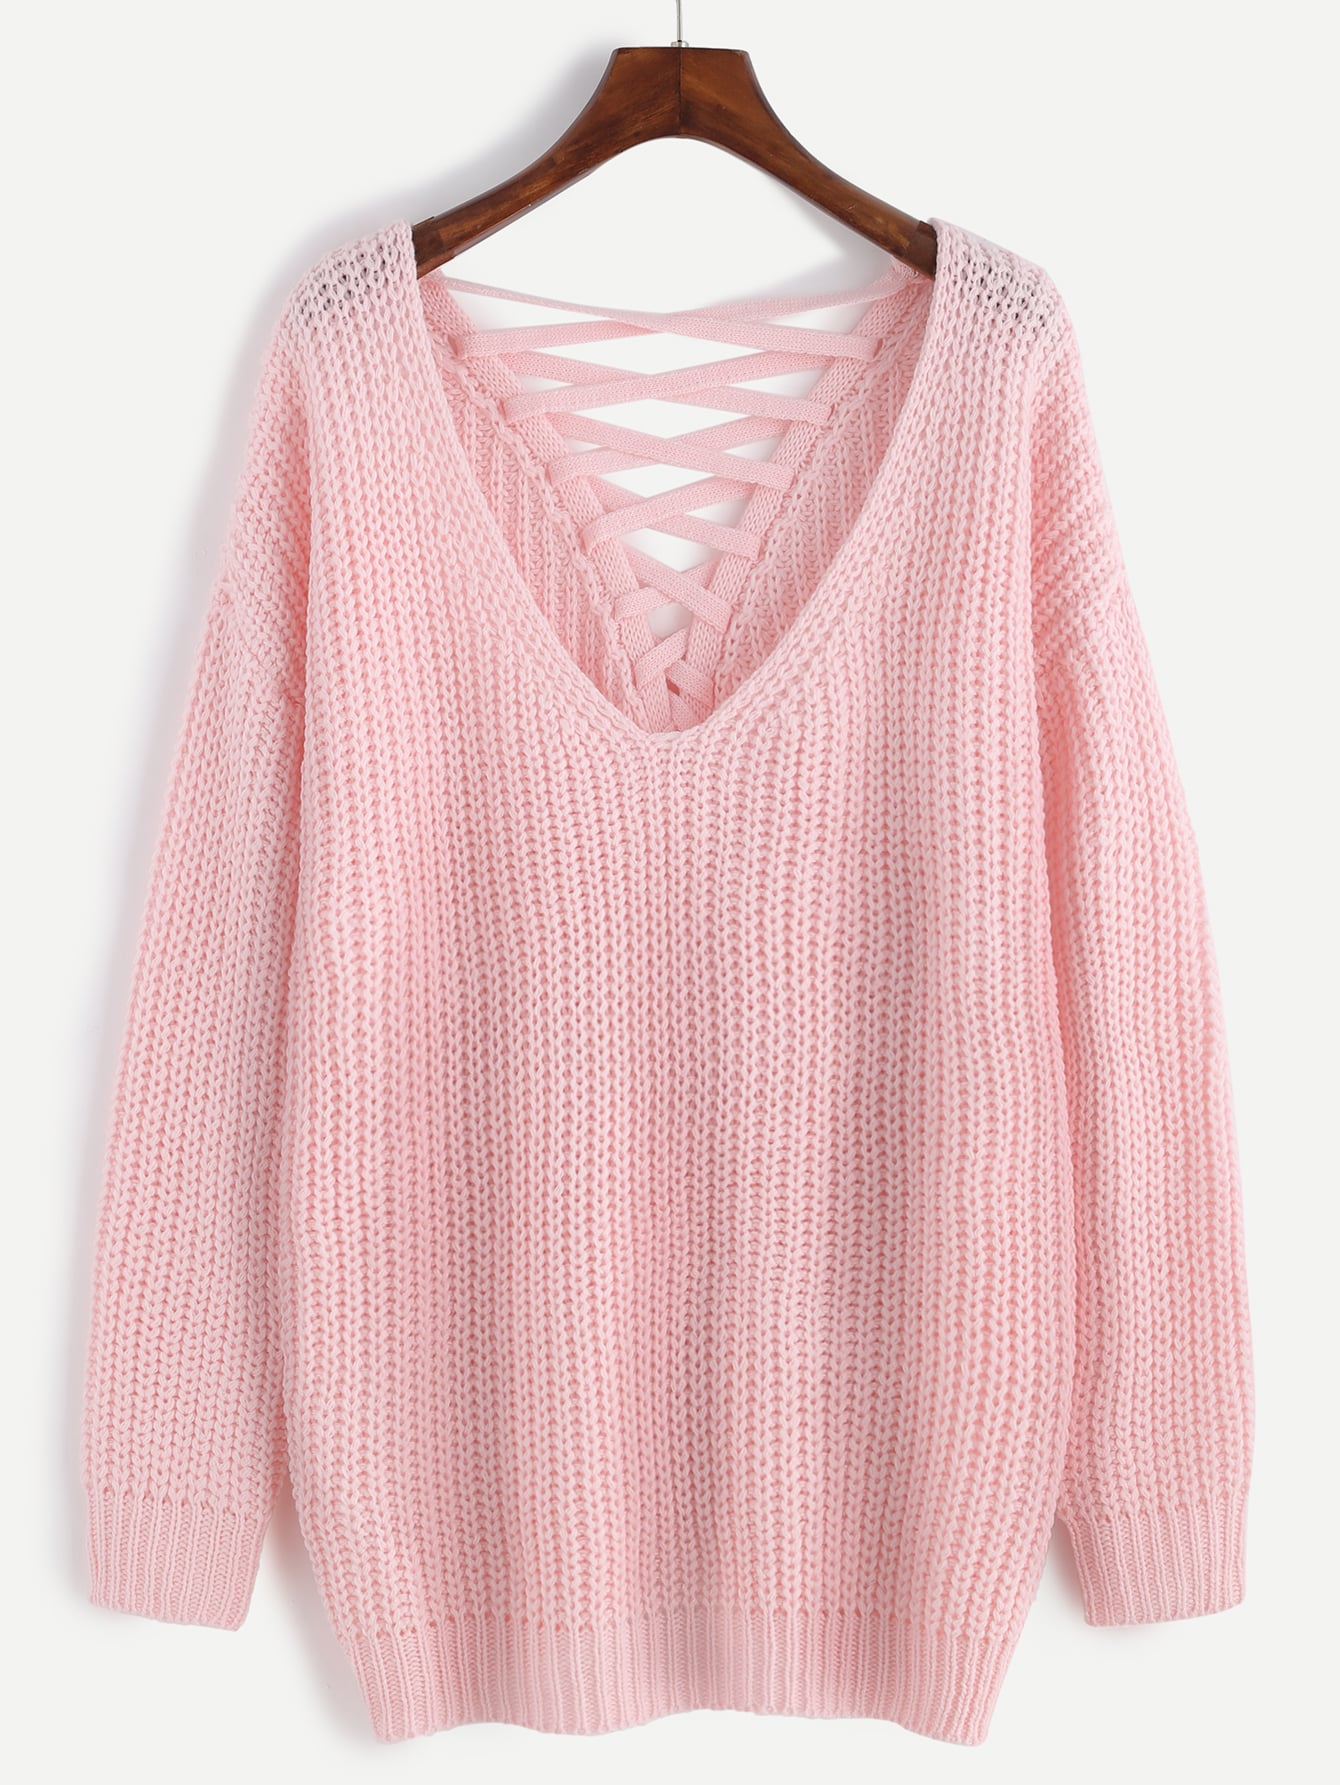 Pink Deep V Neck Lace Up Back Drop Shoulder Sweater -SheIn(Sheinside)